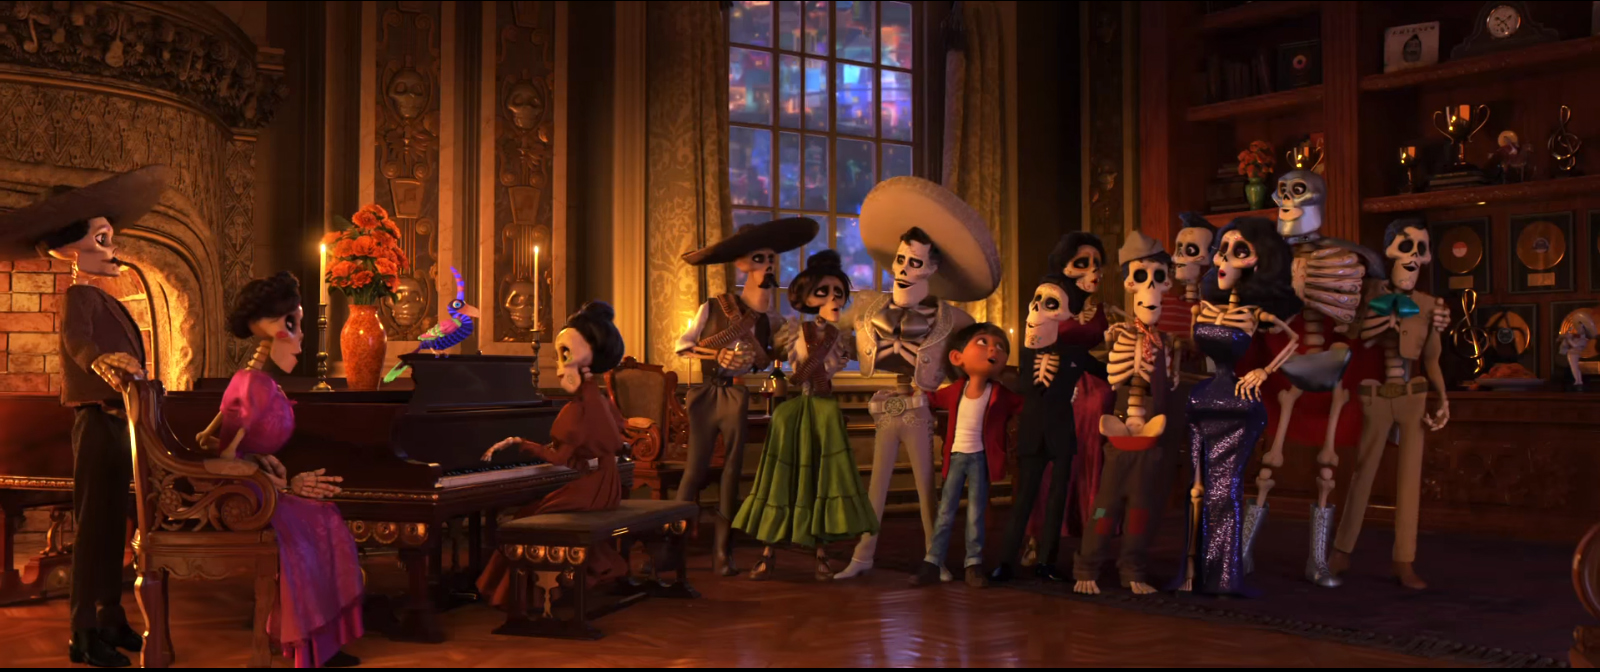 coco-versus-review